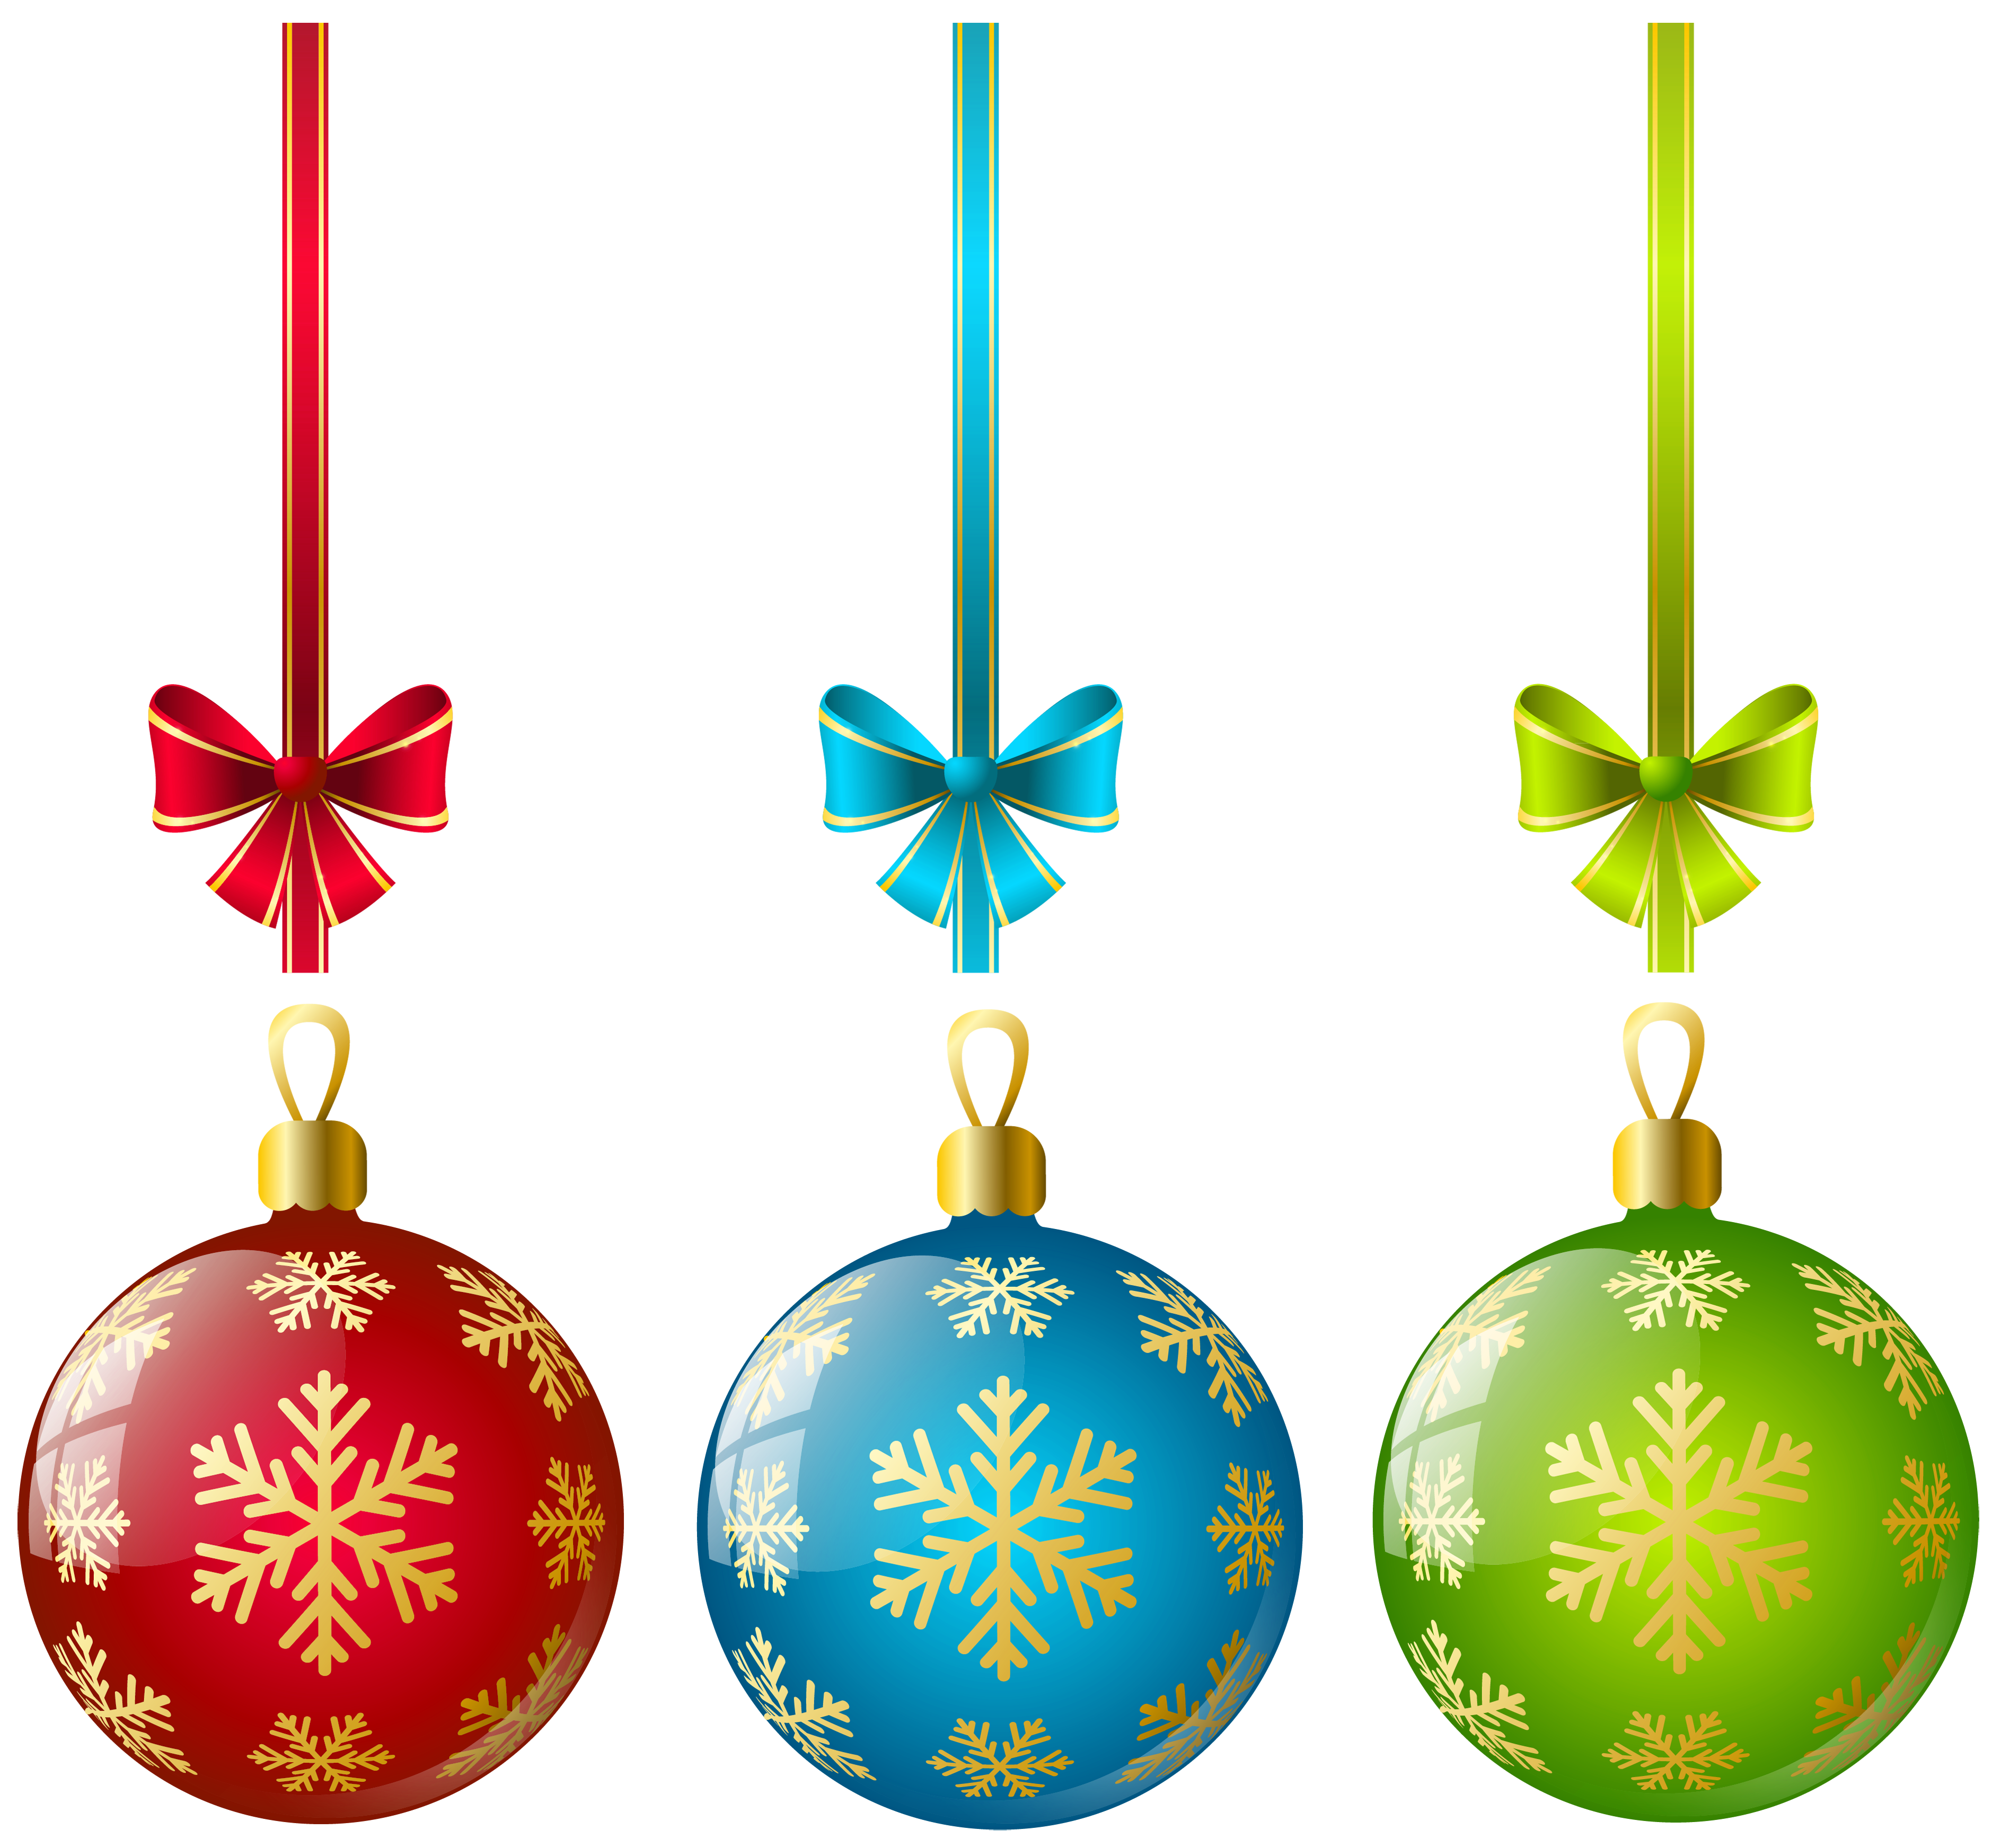 3775x3487 Large Transparent Three Christmas Ball Ornaments Clipart